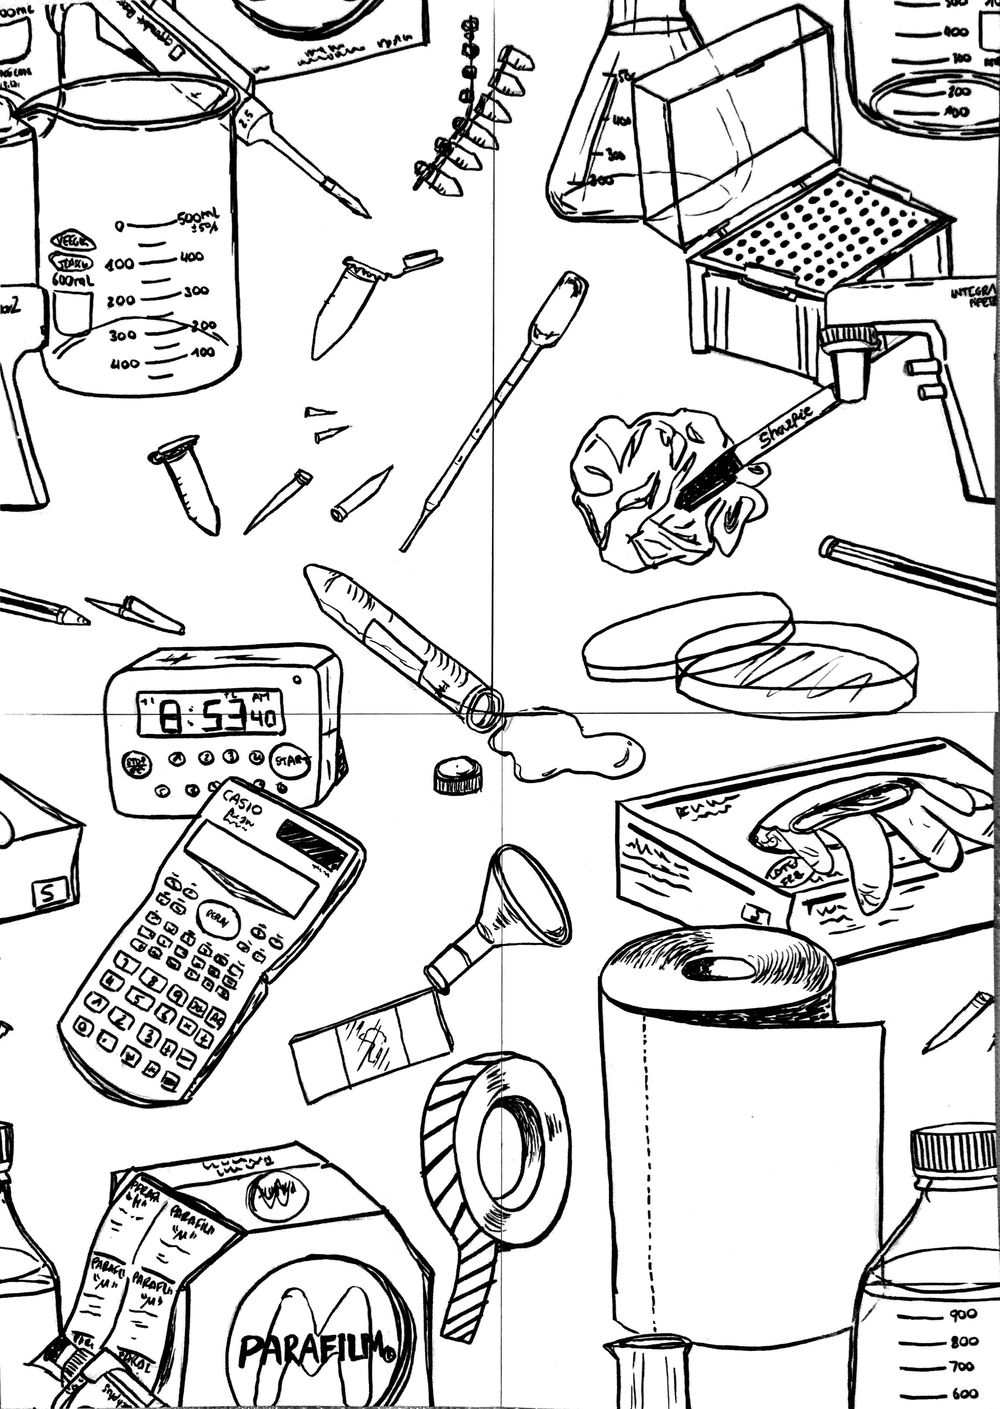 Illustrating Patterns: Creating Hand-Drawn Wallpaper - image 1 - student project